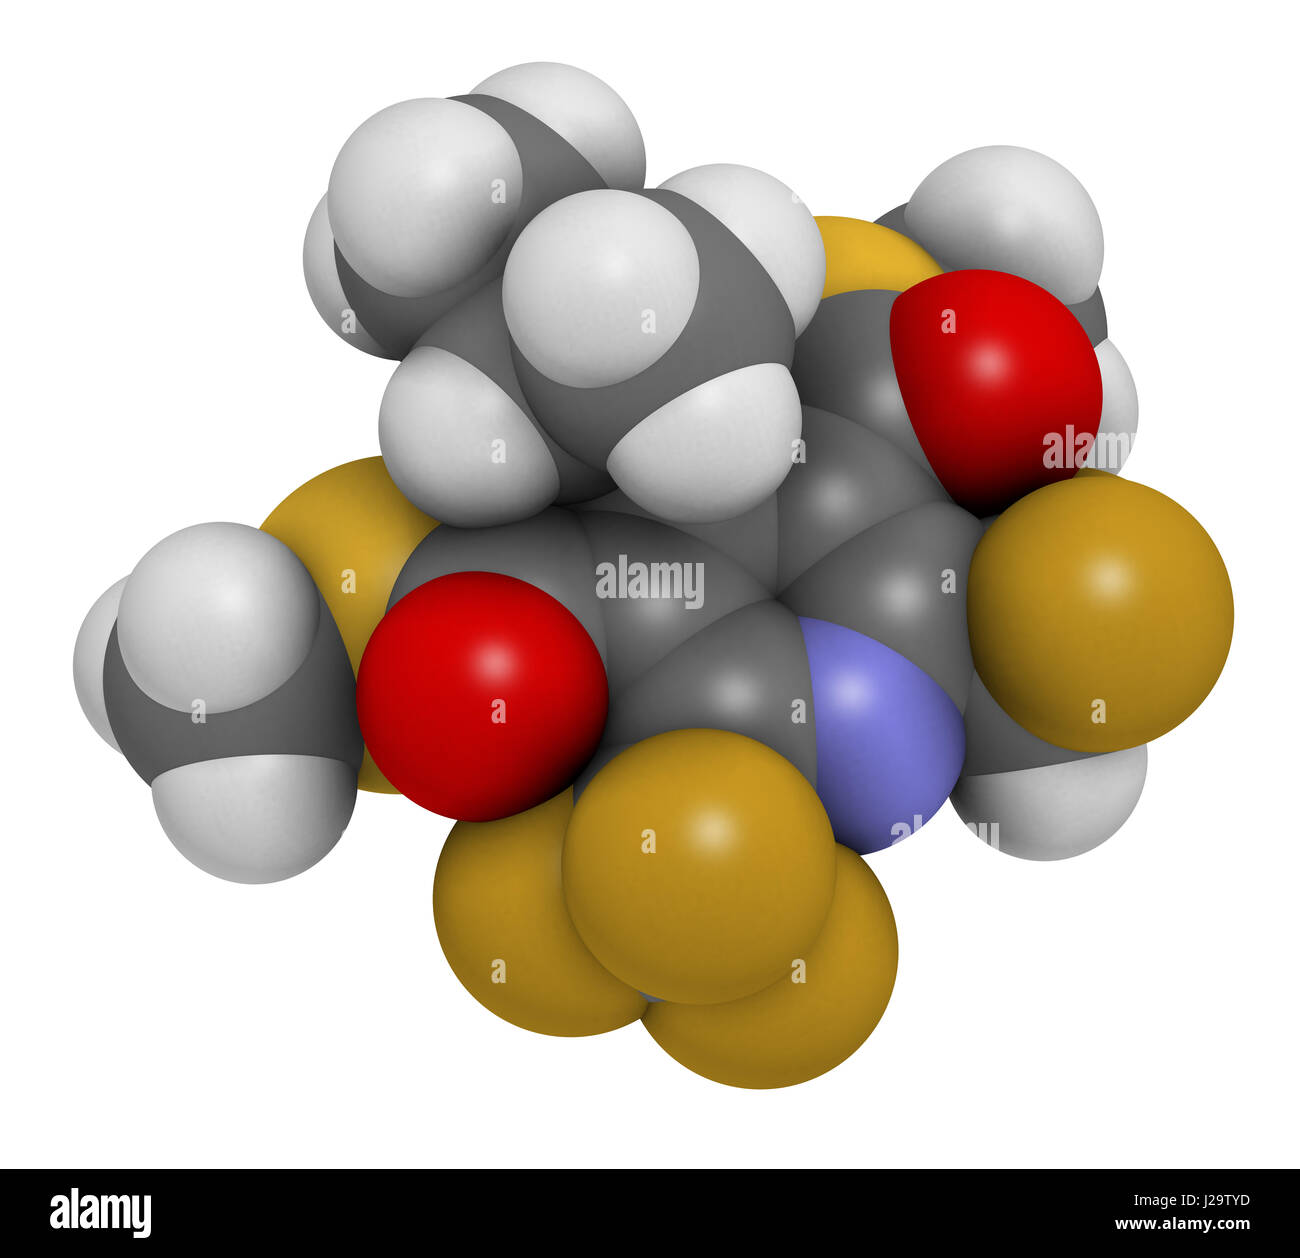 dithiopyr preemergent herbicide molecule 3d rendering atoms are represented as spheres with color - Preemergent Herbicide